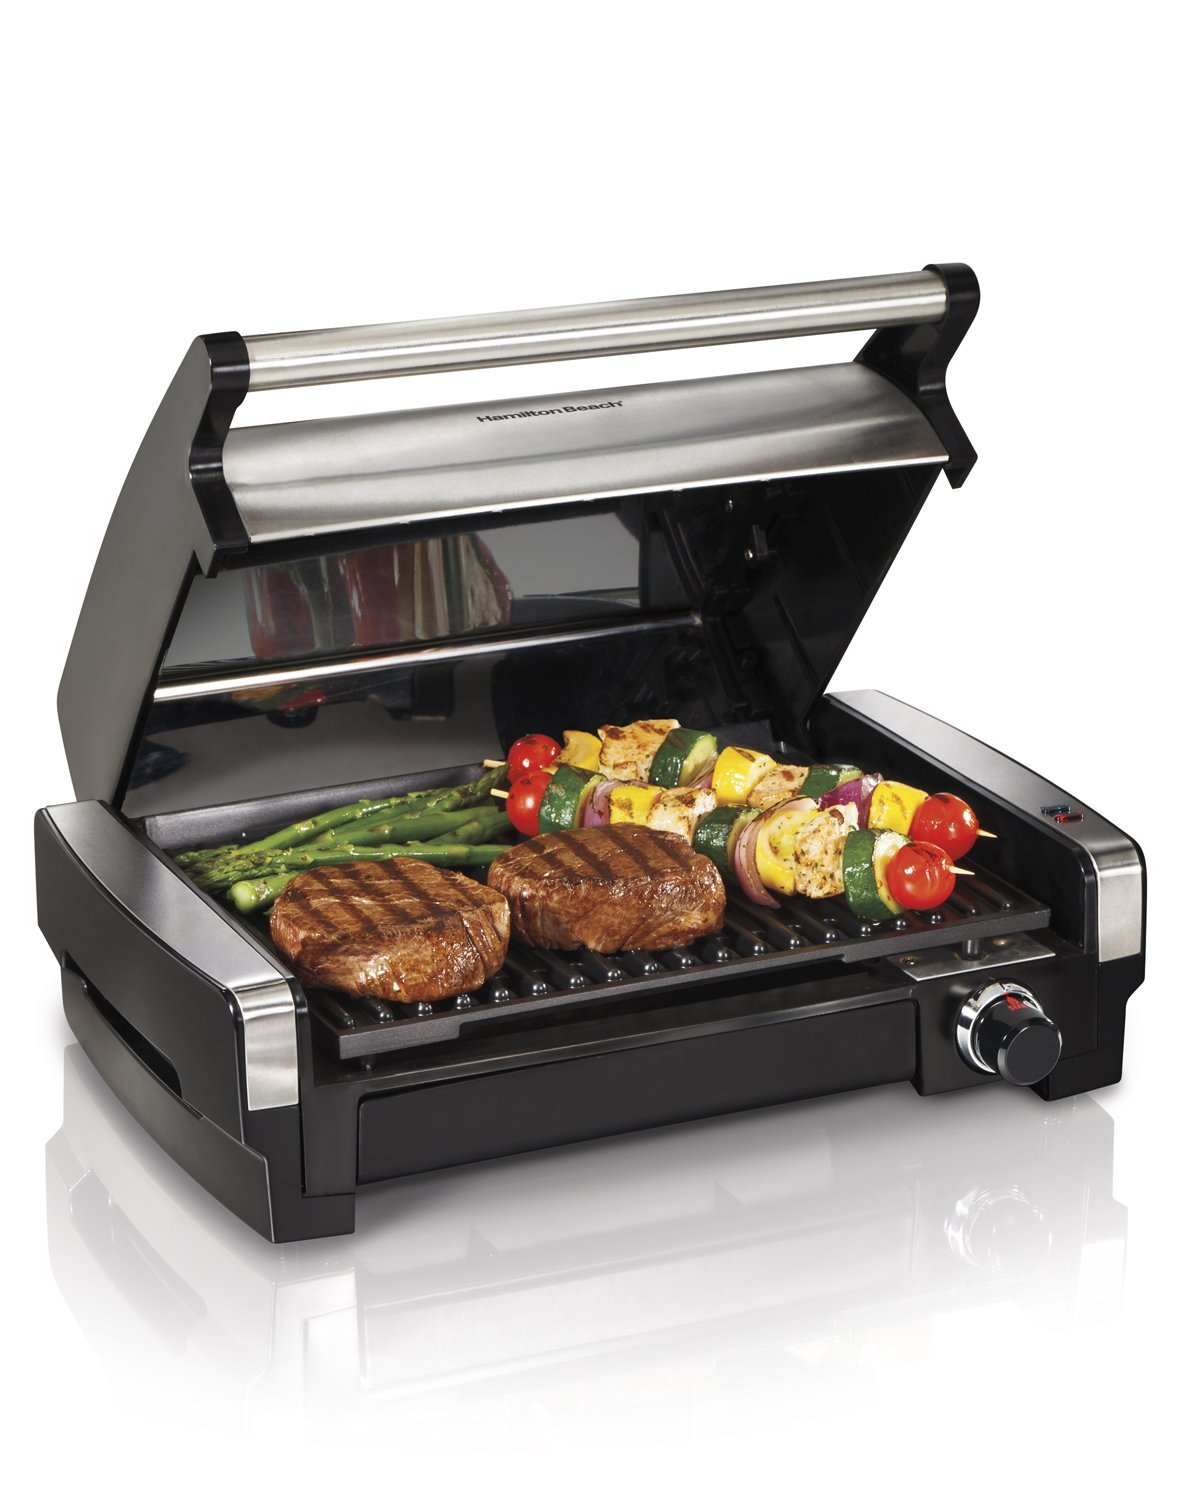 Hamilton Beach Indoor Grill | 25+ Gifts for Him